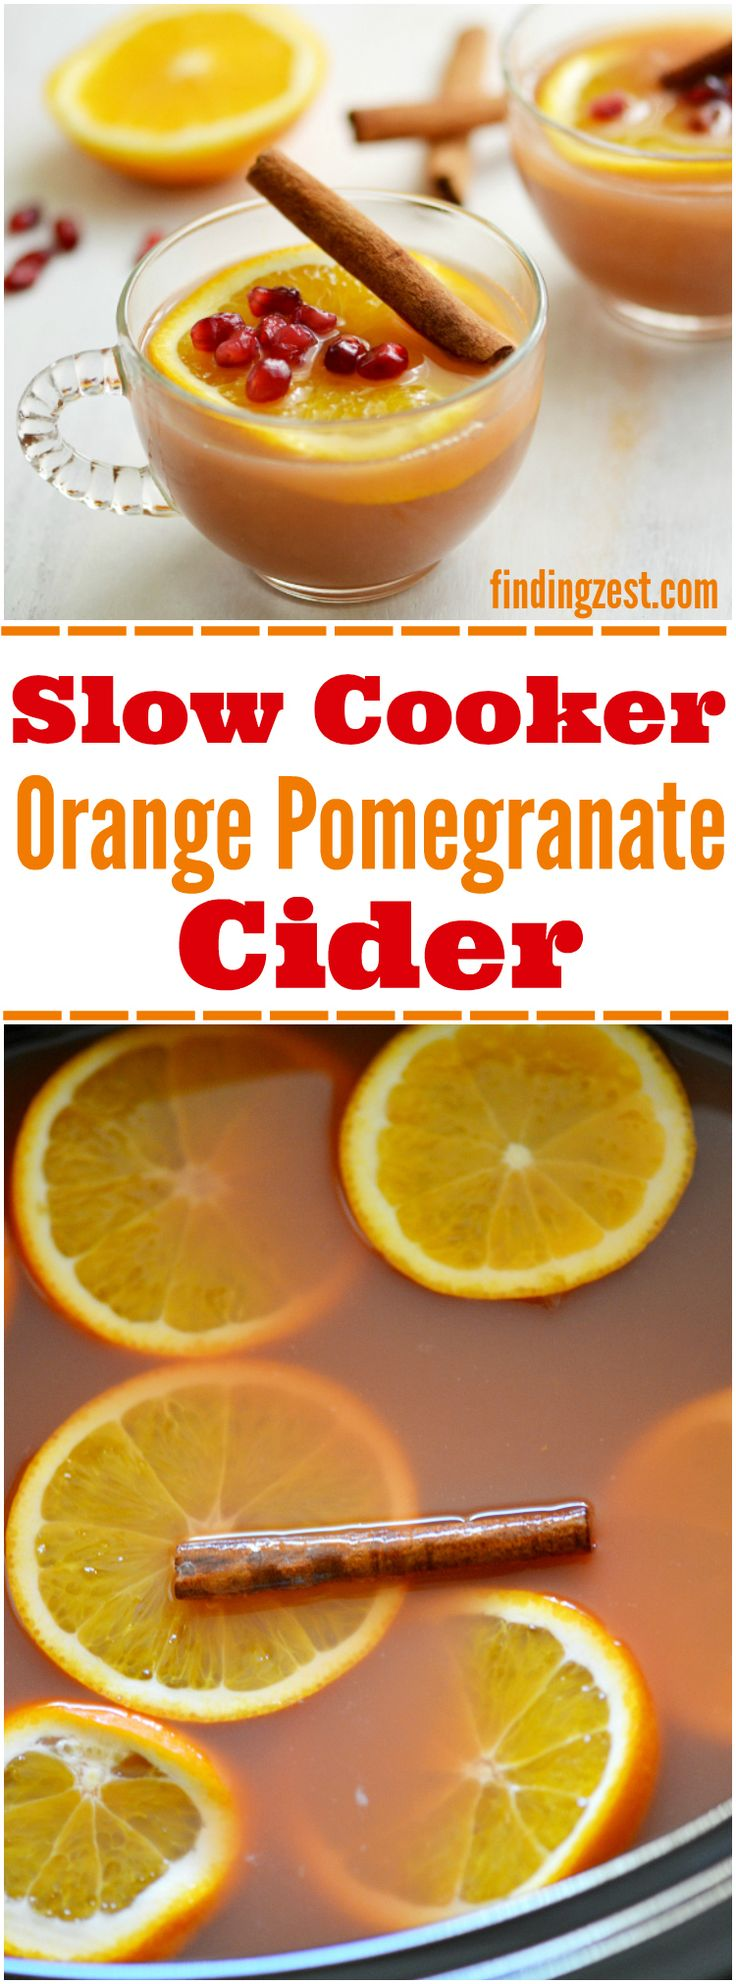 Slow Cooker Orange Pomegranate Cider: This easy apple cider recipe is a perfect holiday drink to serve guests!